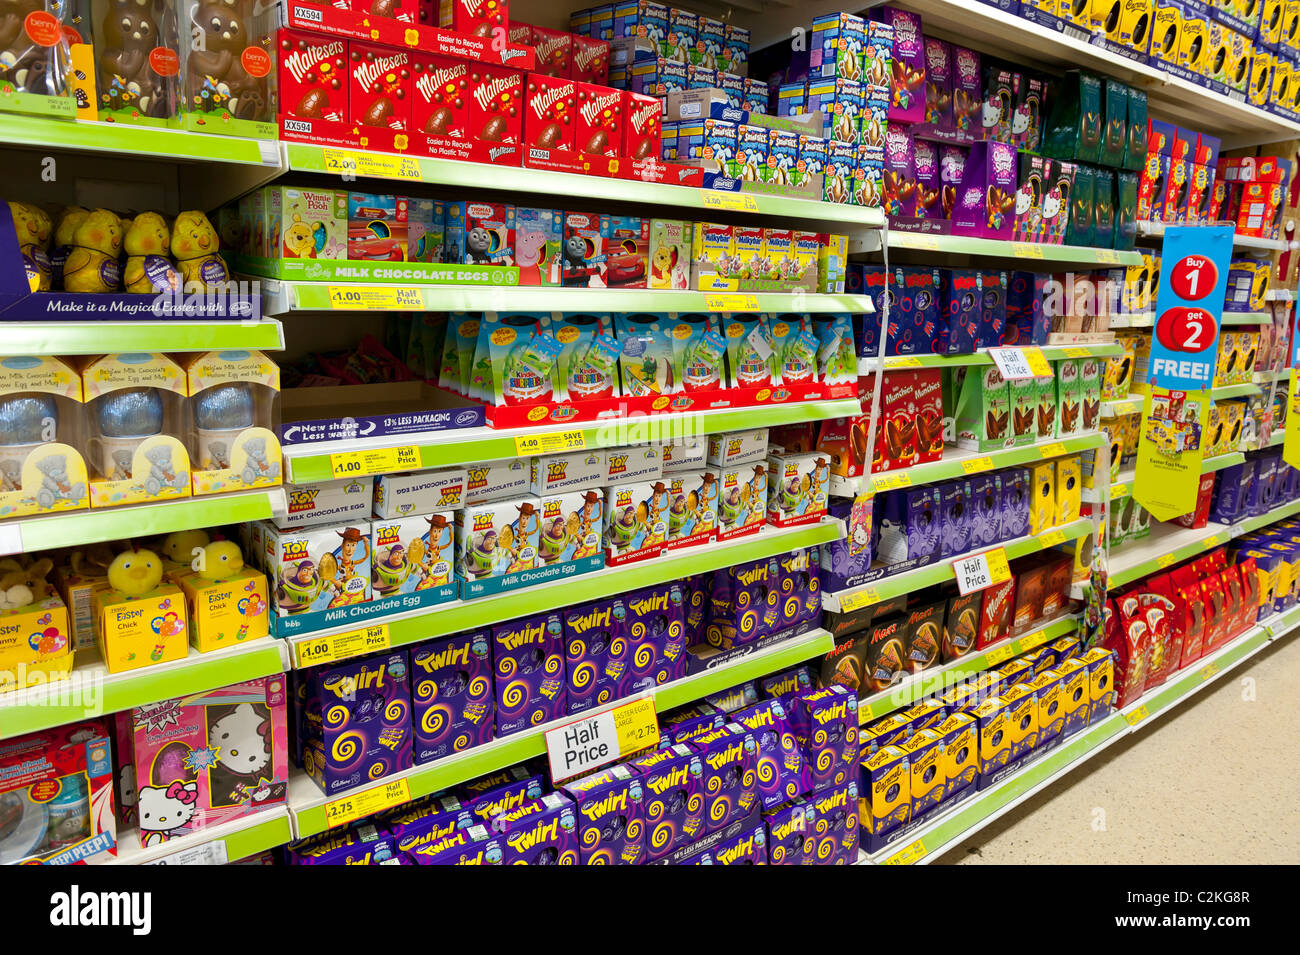 Easter eggs supermarket stock photos easter eggs supermarket a selection of chocolate easter eggs in a tesco supermarket in the uk stock image negle